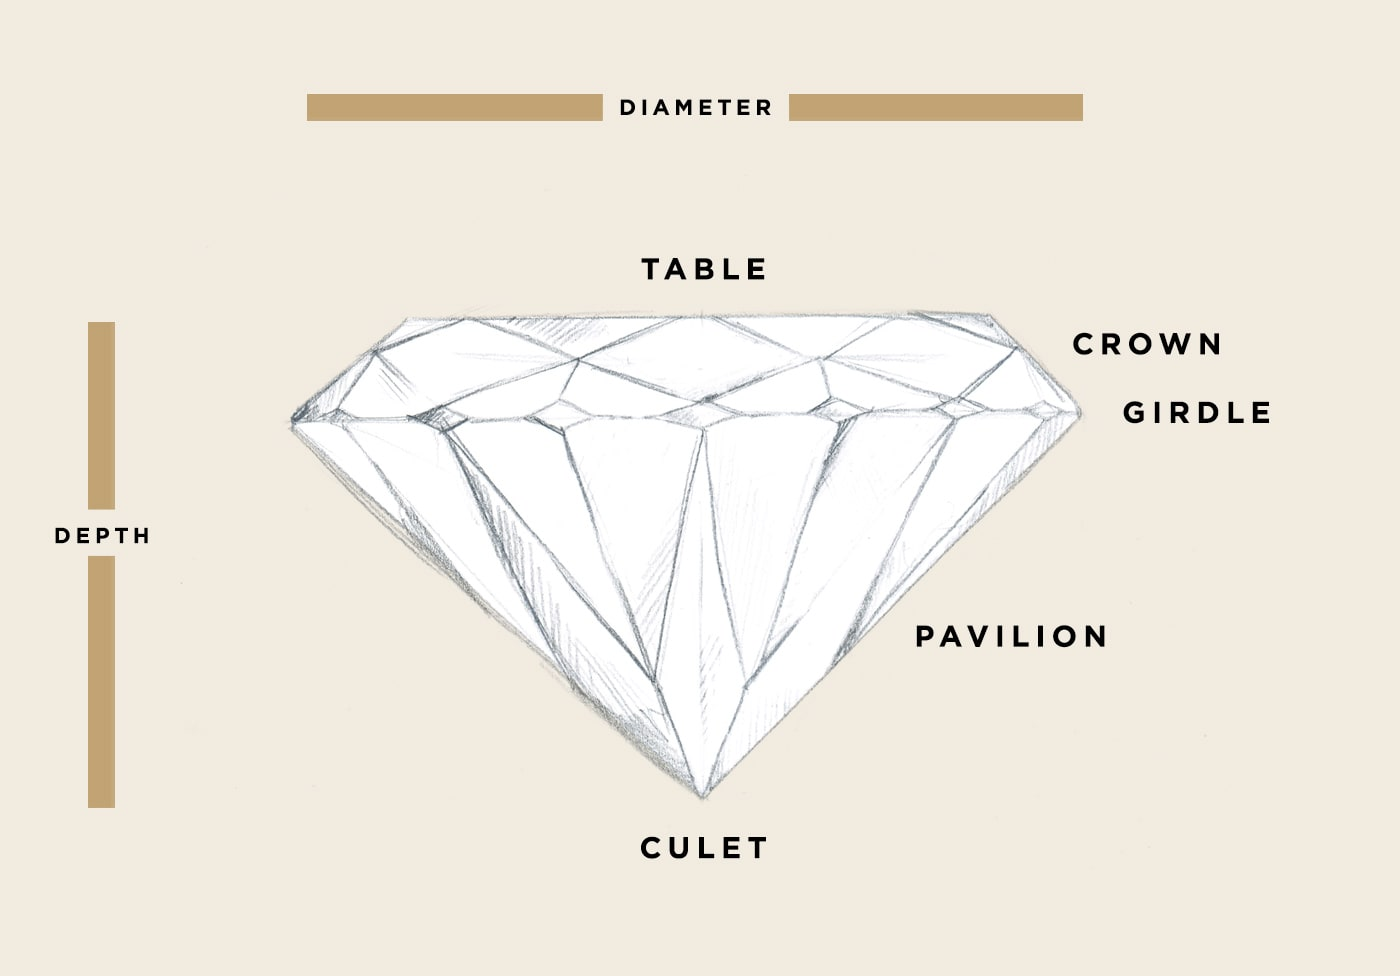 A graphic showing the anatomy of a diamond: table, crown, girdle, pavilion and culet.